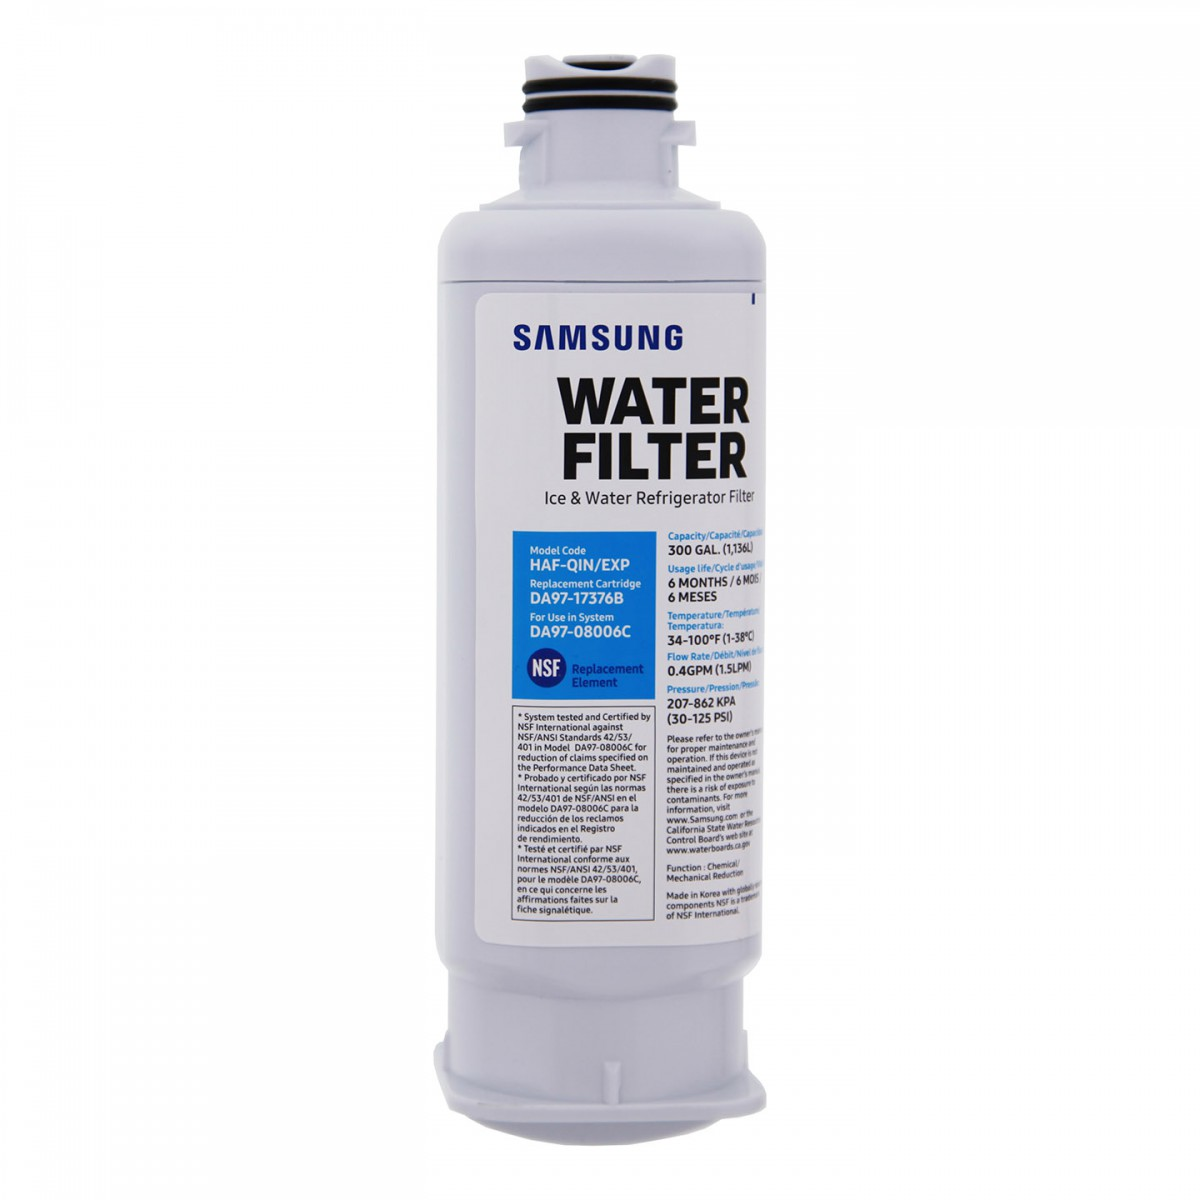 Samsung Da97 17376b Haf Qin Refrigerator Replacement Water